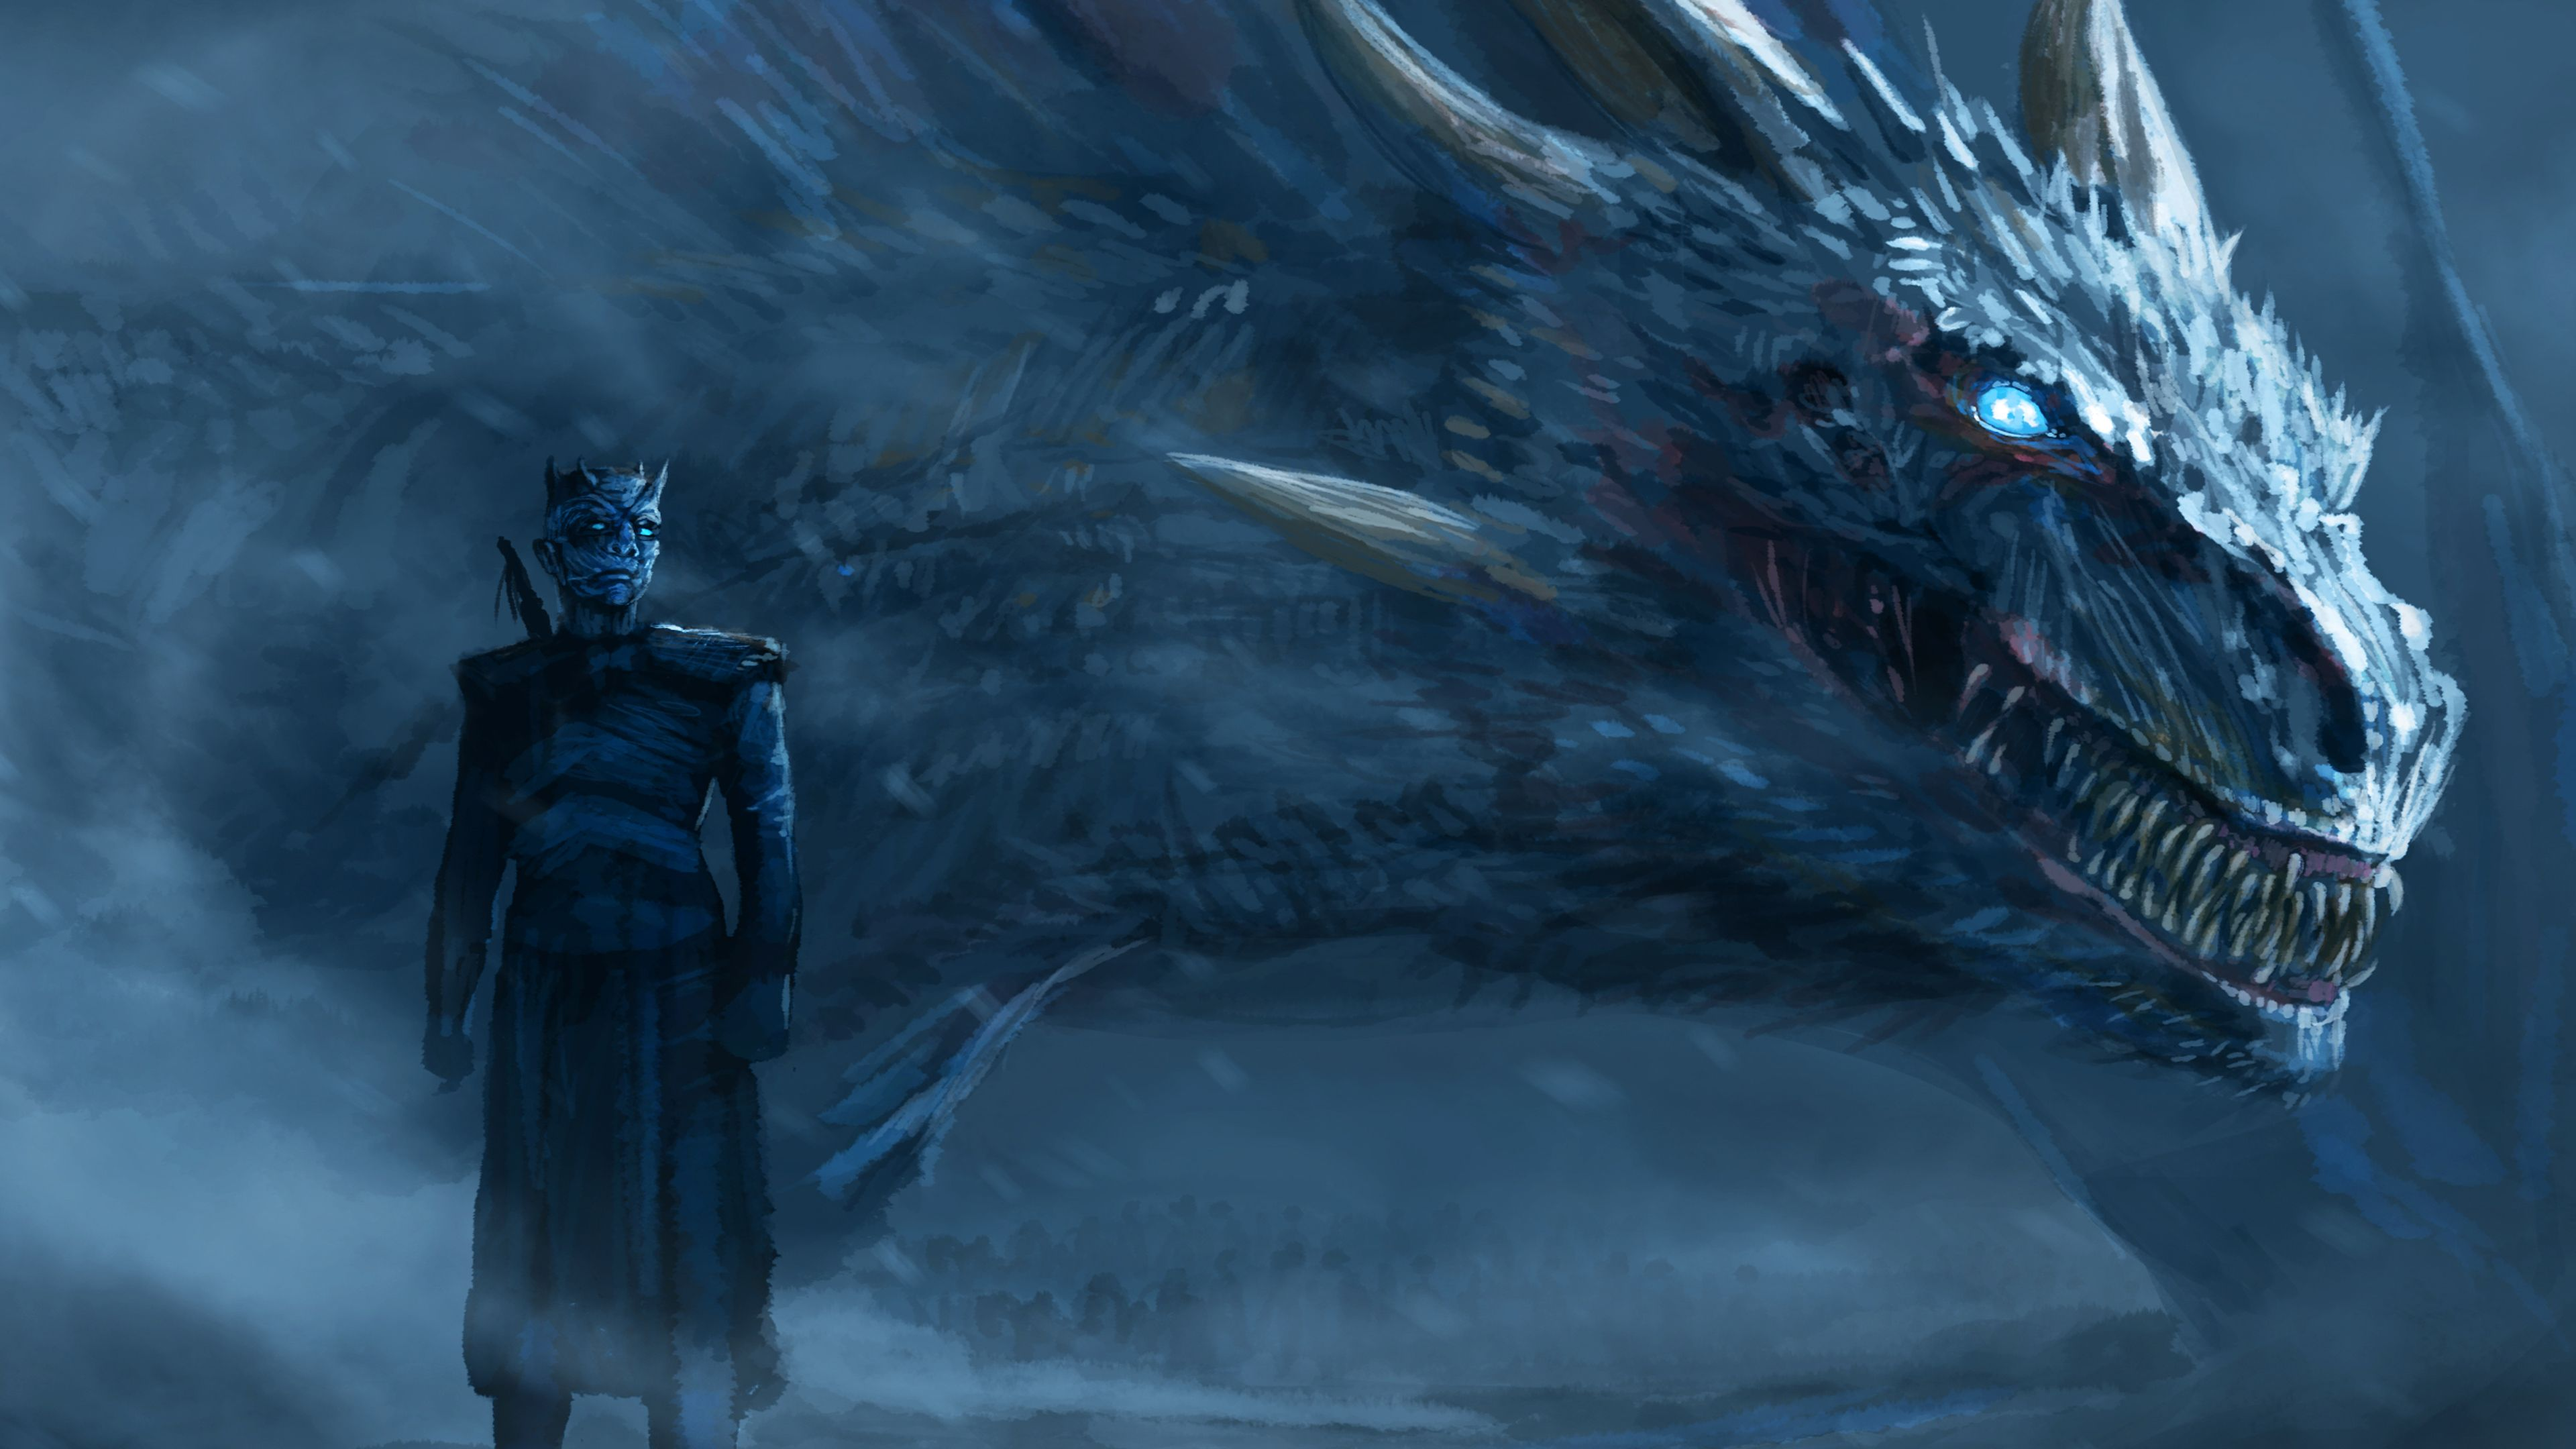 Game Of Thrones Art Wallpapers Top Free Game Of Thrones Art